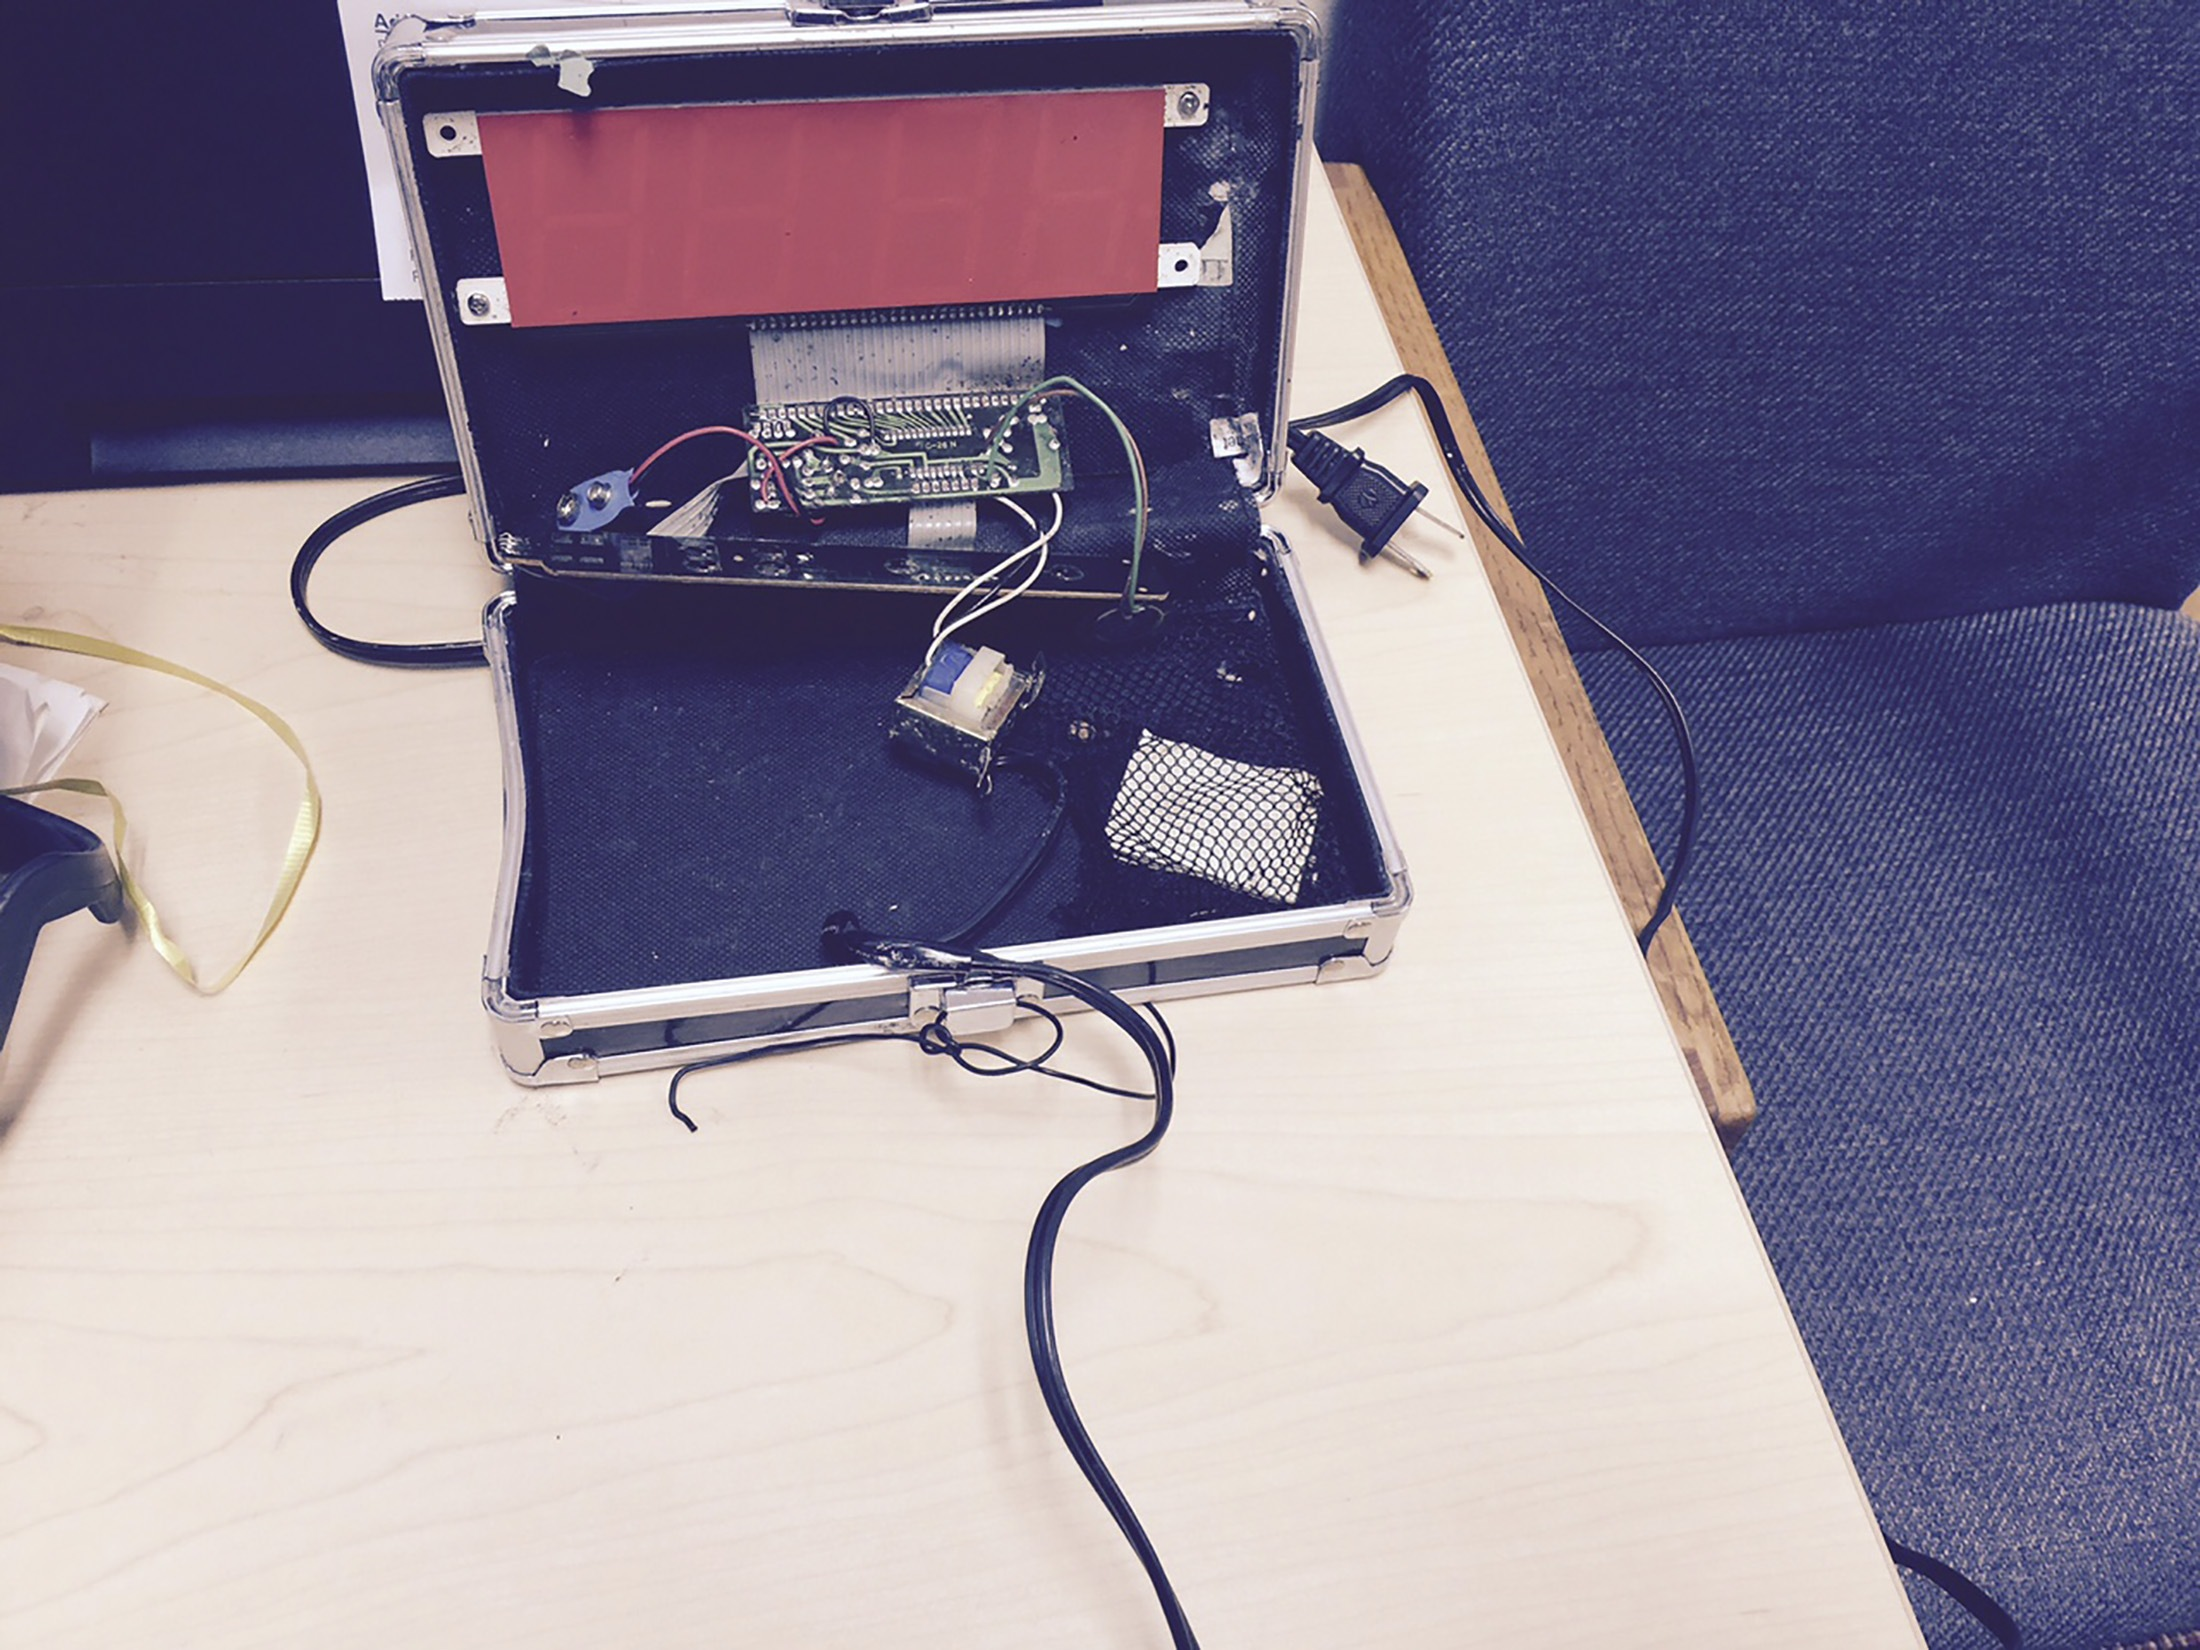 A homemade clock made by Ahmed Mohamed, 14, is seen in an undated picture released by the Irving Texas Police Department September 16. Irving Texas Police Department/Handout via Reuters